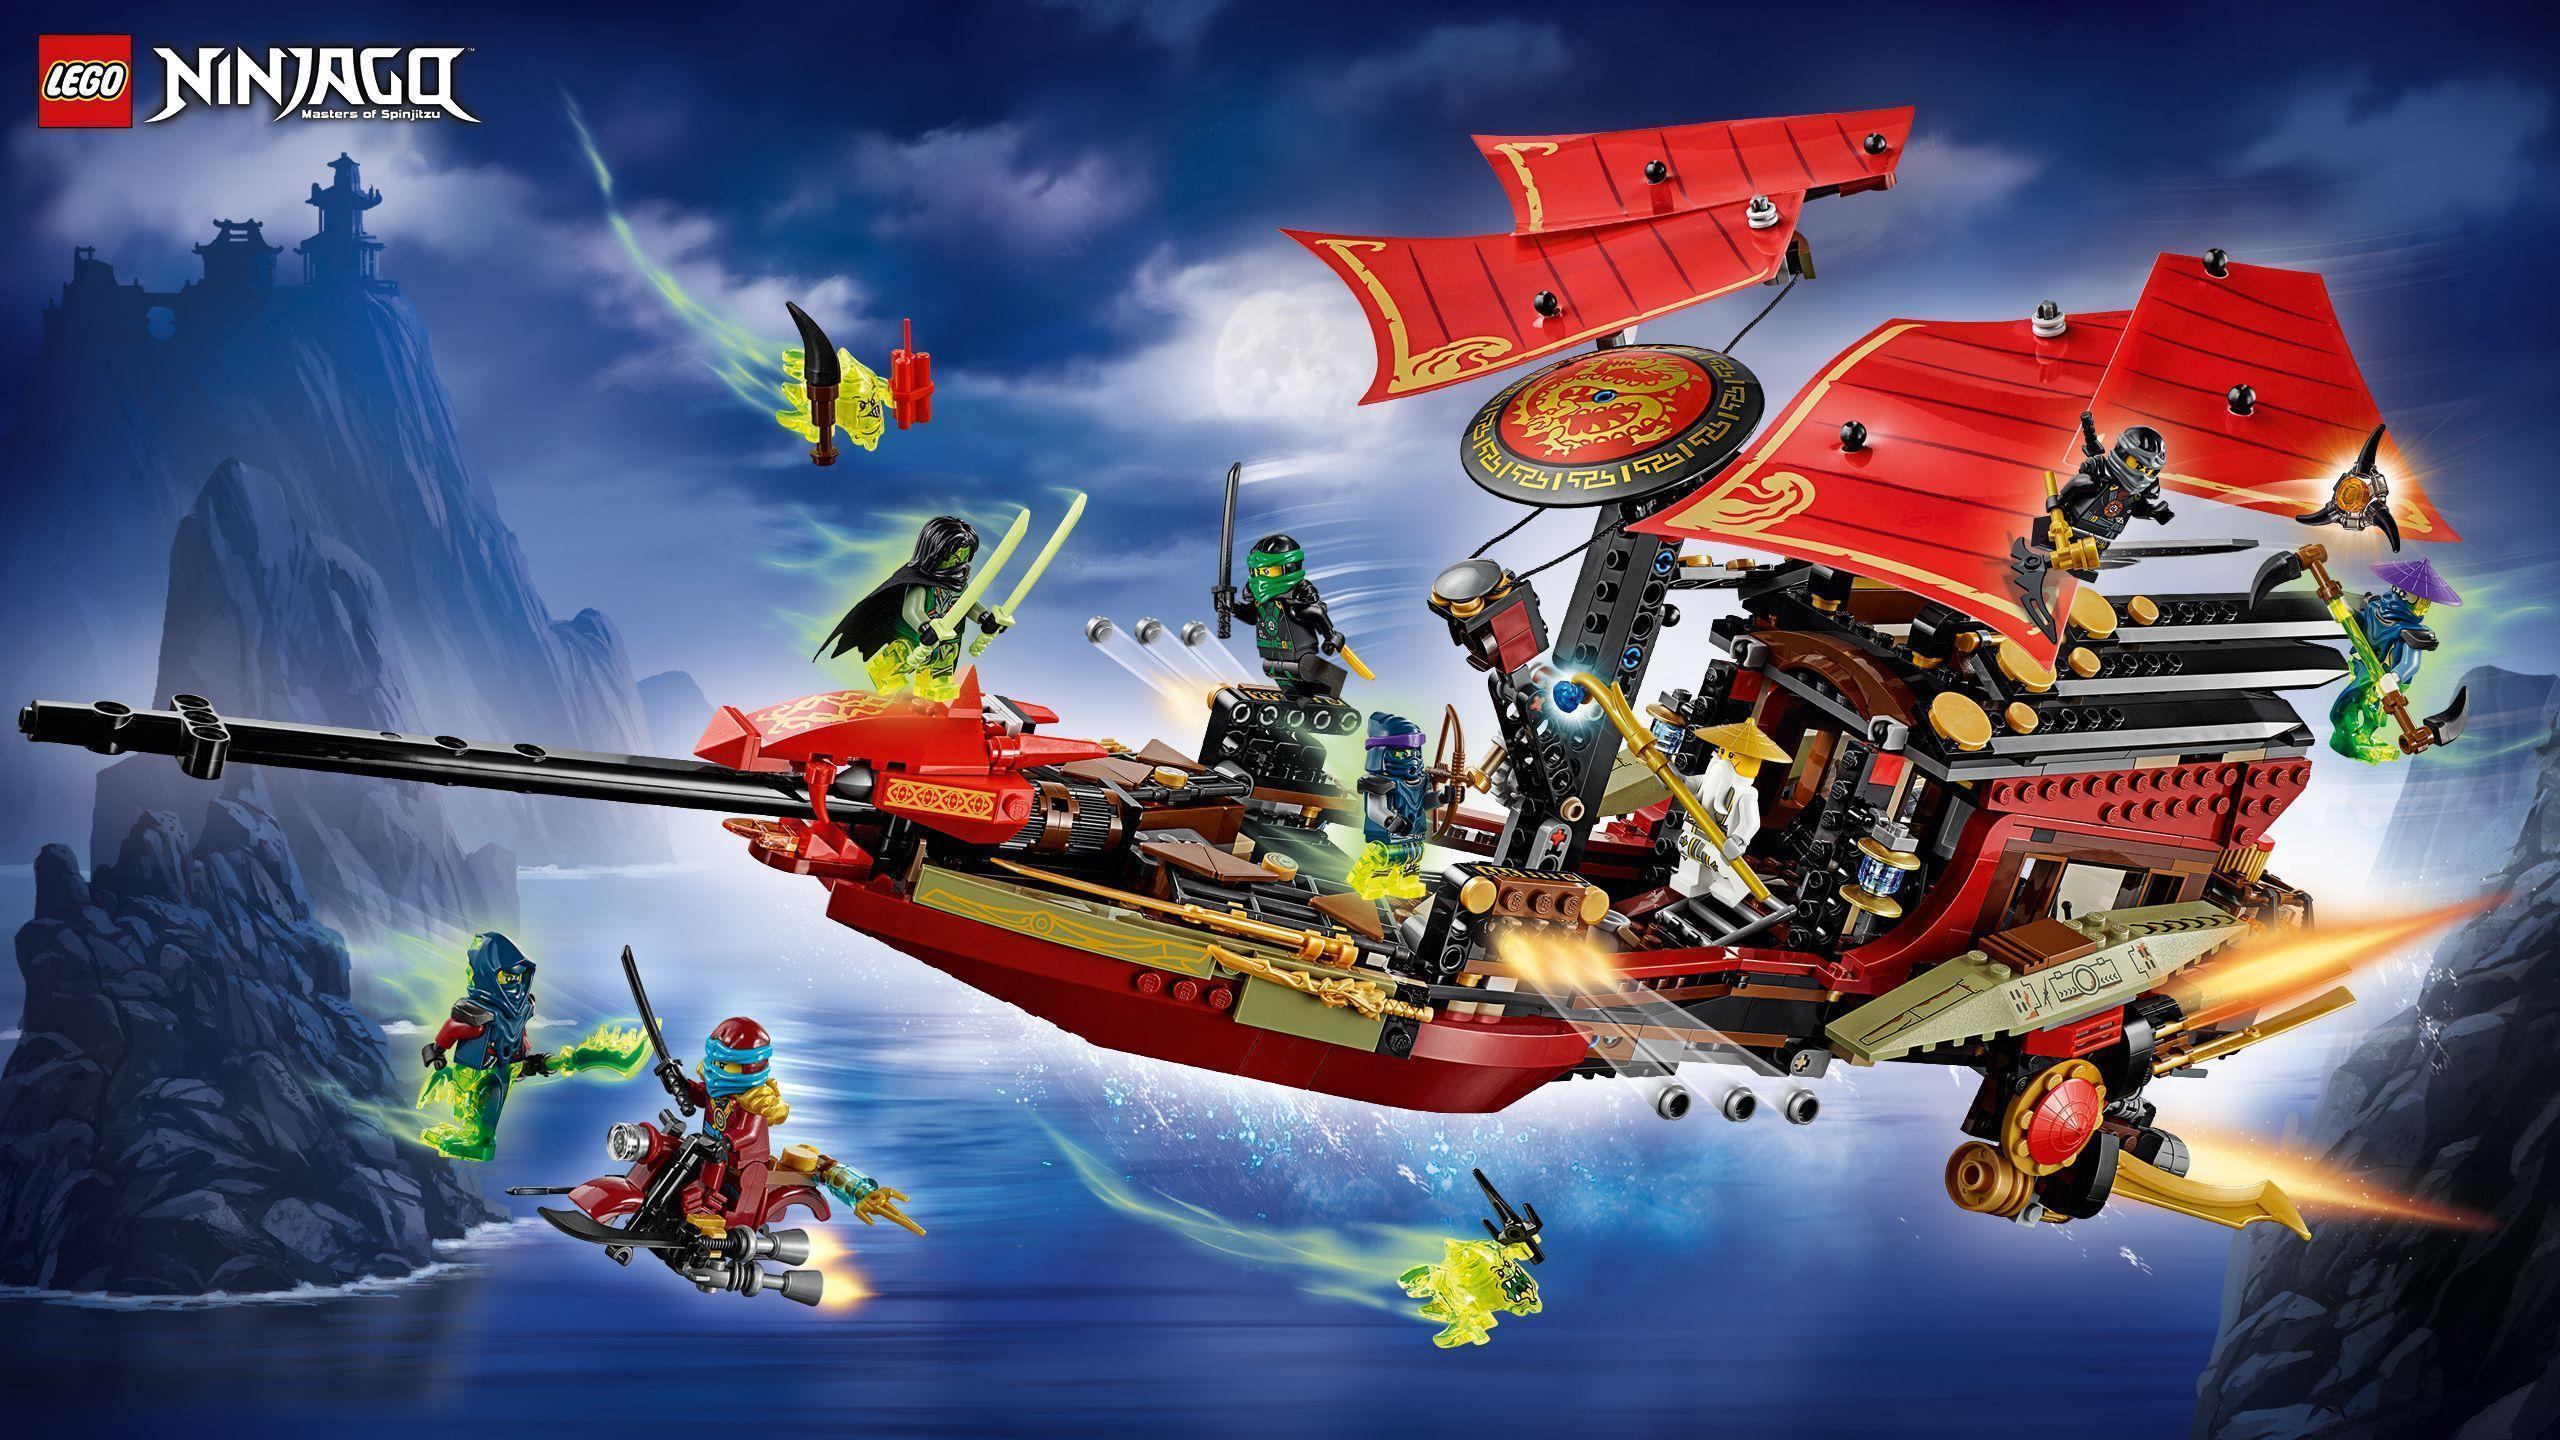 Ninjago Wallpapers Wallpaper Cave